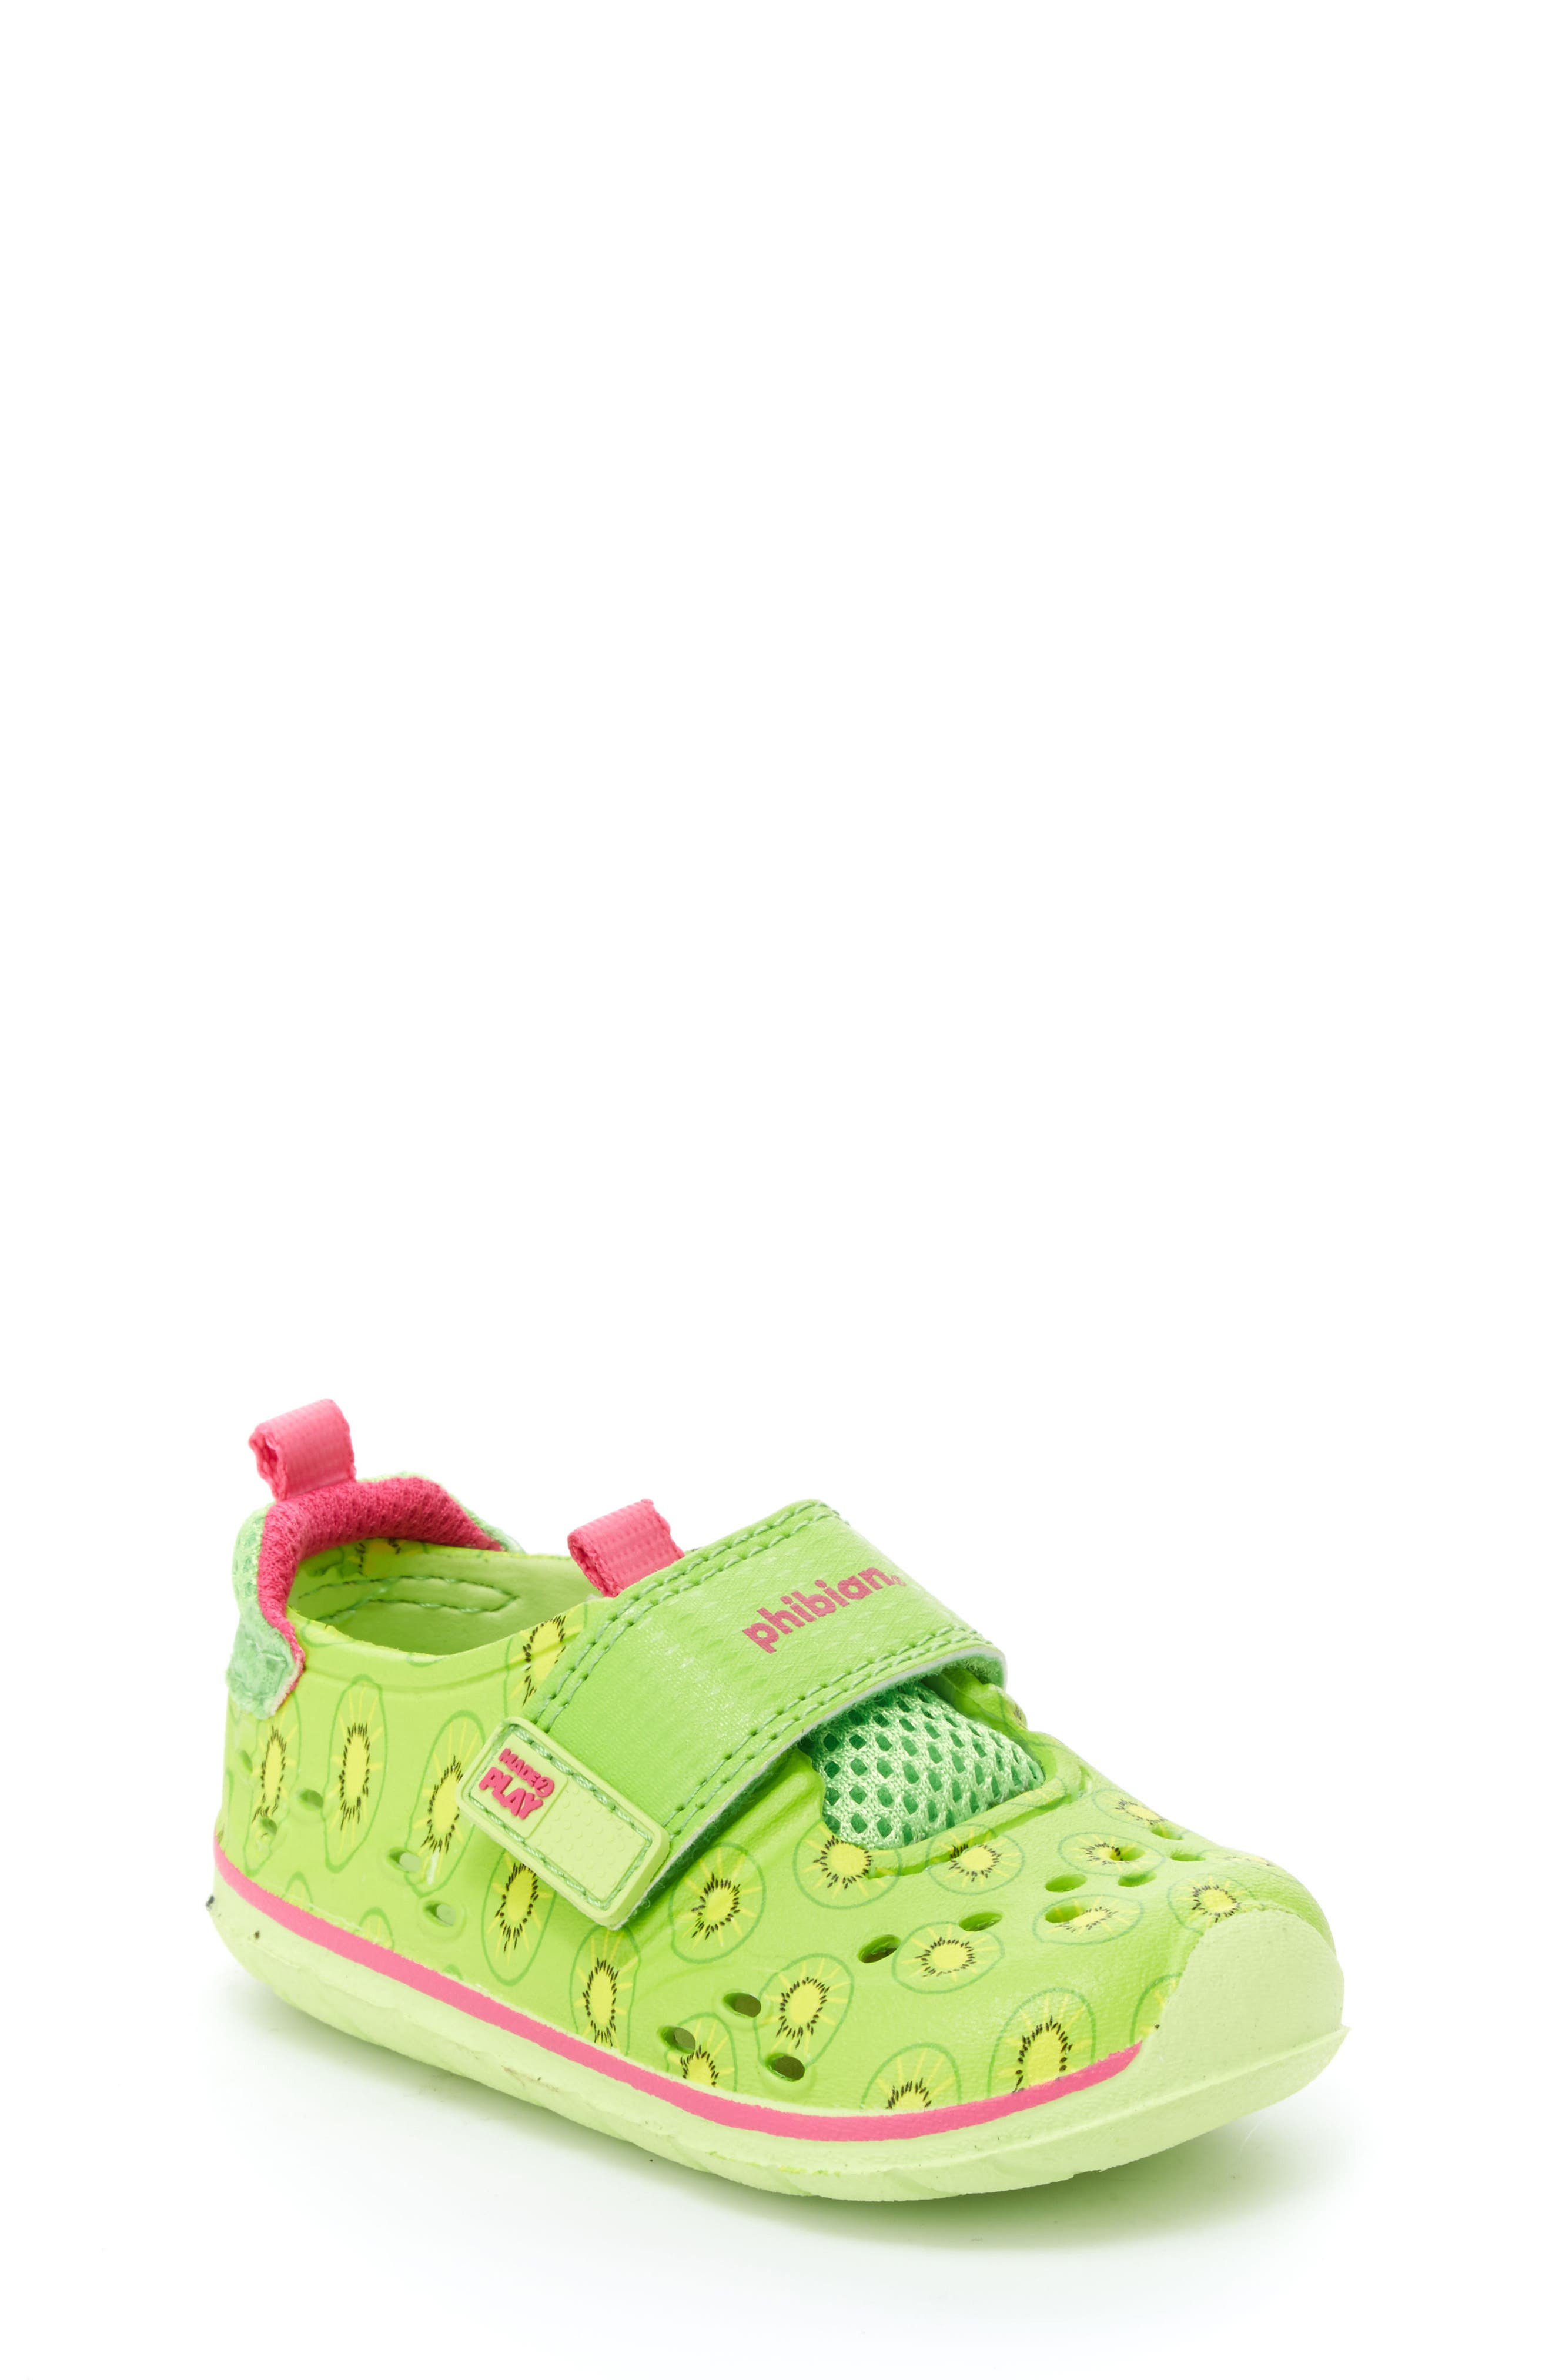 Made2Play<sup>®</sup> Phibian Sneaker,                         Main,                         color, Green Kiwi